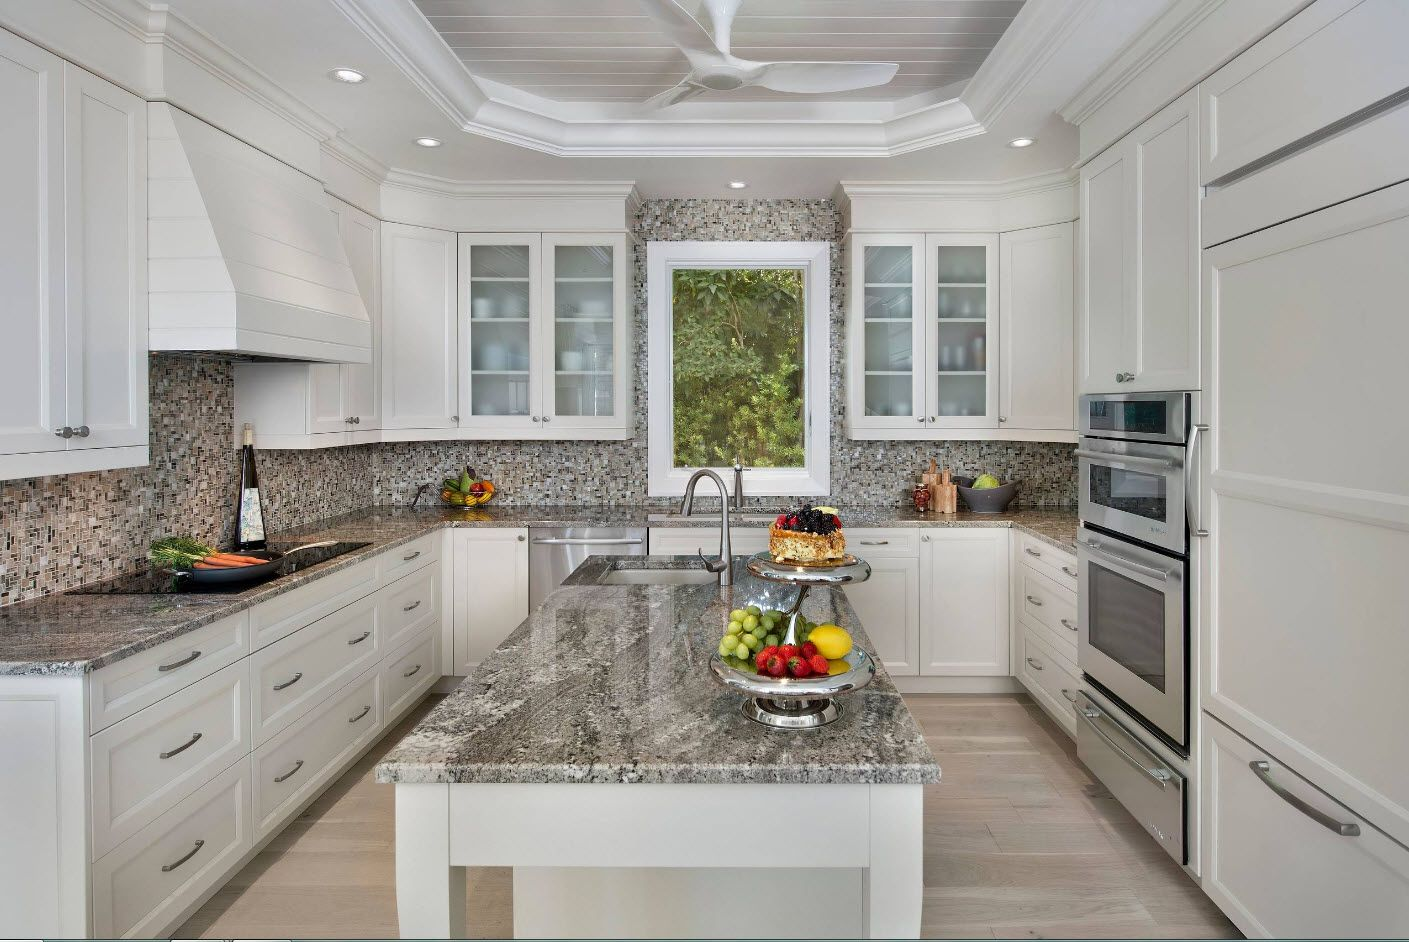 Nice classic noble mix in the private house's spectacular large kitchen design with large window